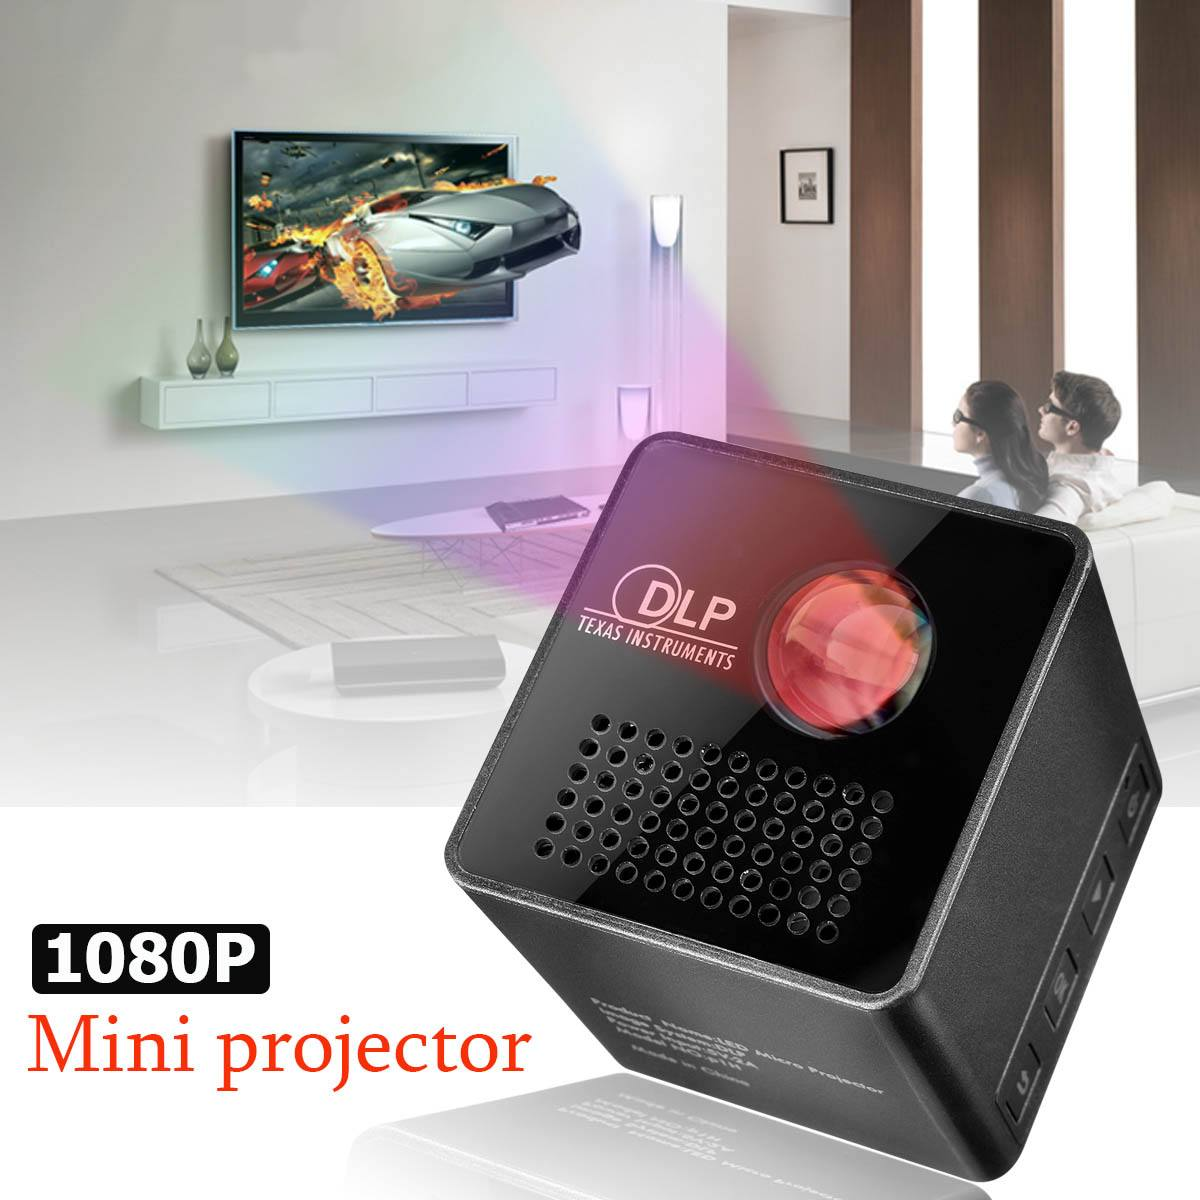 Mini Projector 1080P Wireless Wifi Mobile Projector Support Miracast Dlna Pockets Proyector Home Theater 5.1 DLP Beamer BatteryMini Projector 1080P Wireless Wifi Mobile Projector Support Miracast Dlna Pockets Proyector Home Theater 5.1 DLP Beamer Battery